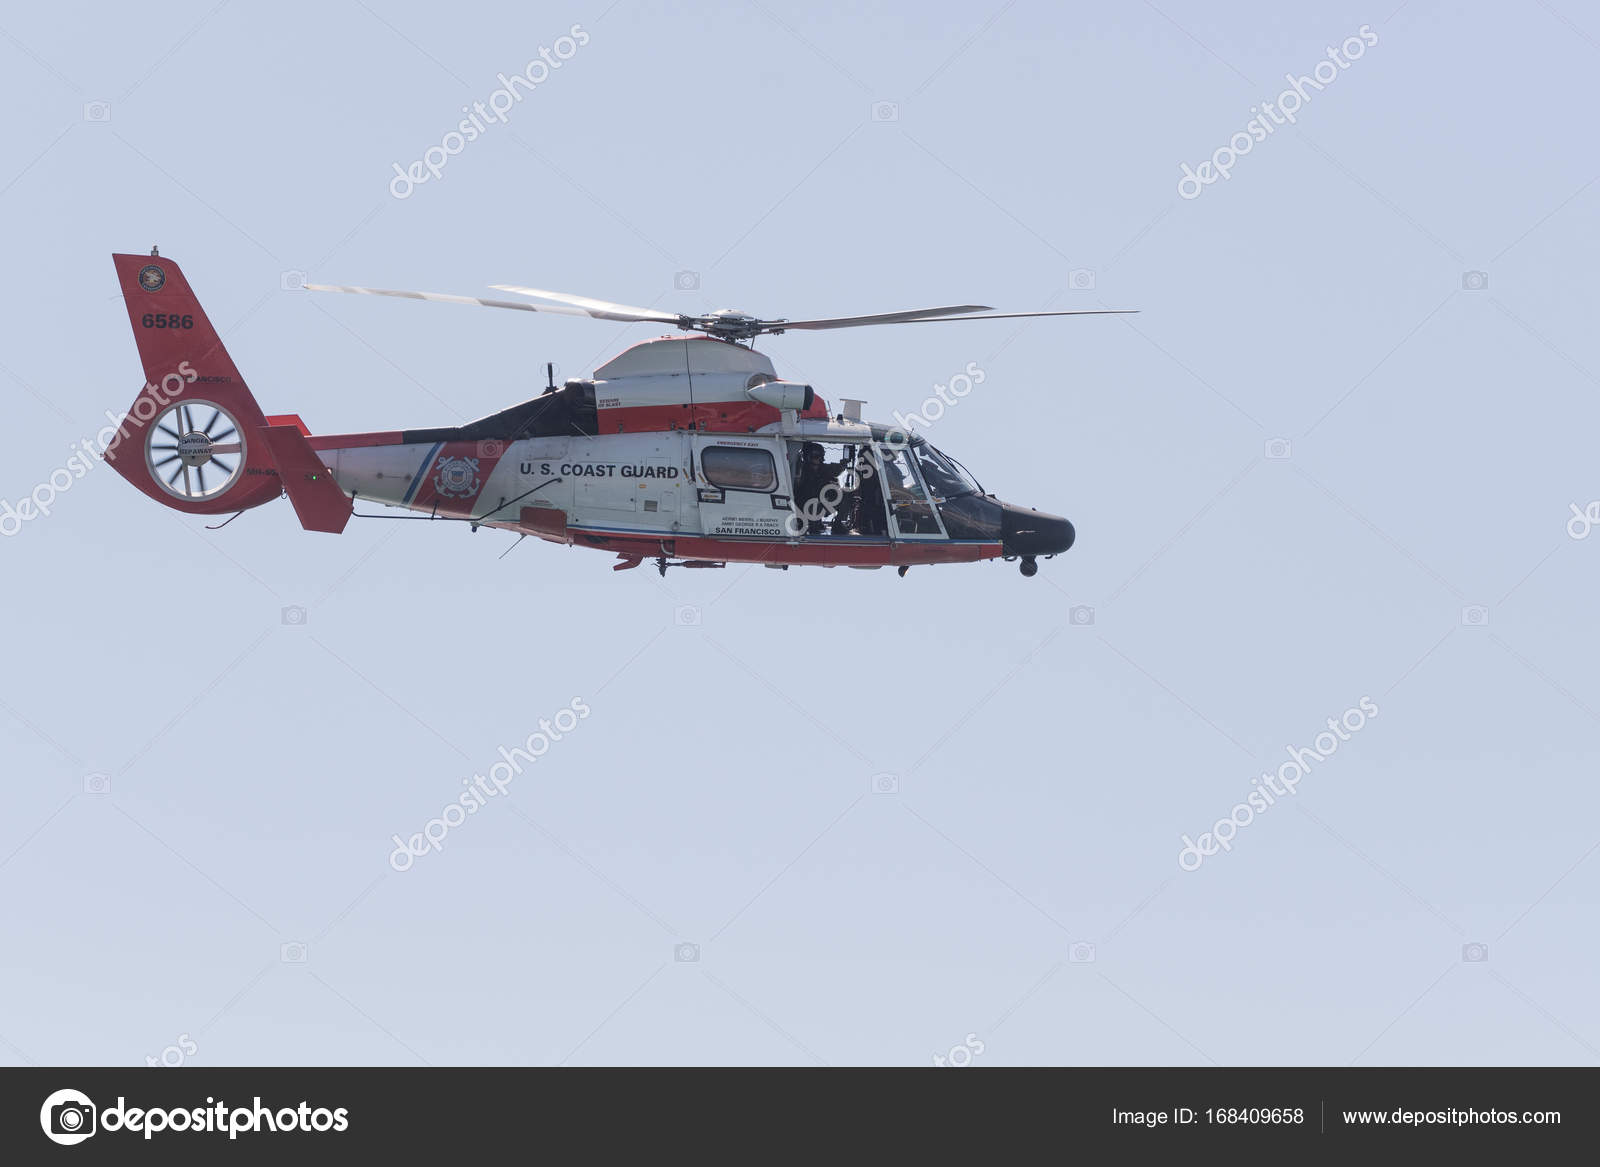 H Helicopter on ah-64 apache, uh-72a, ch-53e super stallion, eurocopter ec 135, eurocopter ec145, united states coast guard, eurocopter ec 155, agustawestland aw139, bell eagle eye, lockheed hc-130, sikorsky s-76, eurocopter x3, sikorsky hh-60 jayhawk, eurocopter dauphin, hh-60 pave hawk, agusta a109, kc-135 stratotanker, ch-47 chinook, uh-1 iroquois,